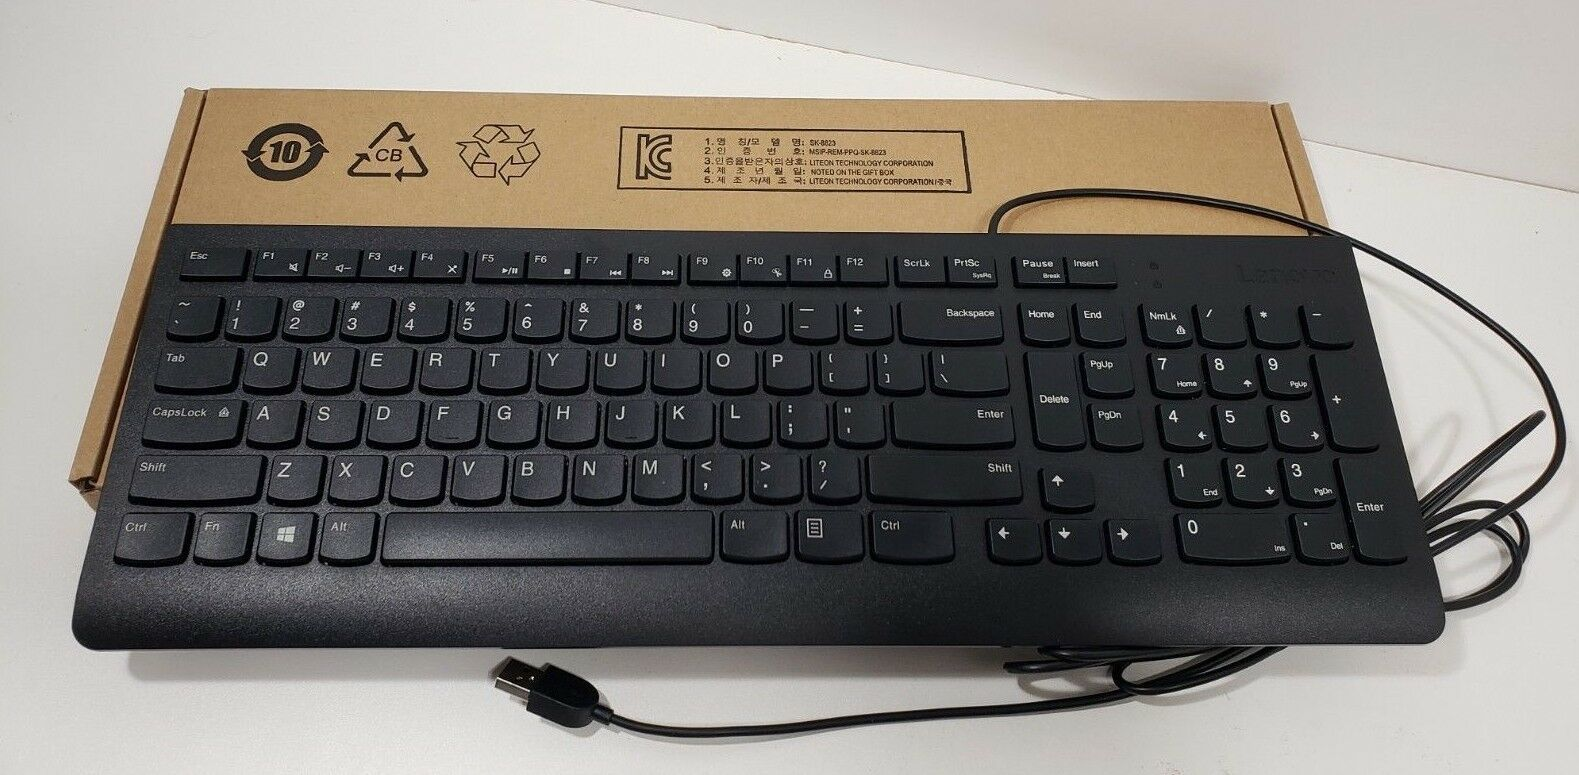 Lenovo Wired Keyboard sk:8823 image 2